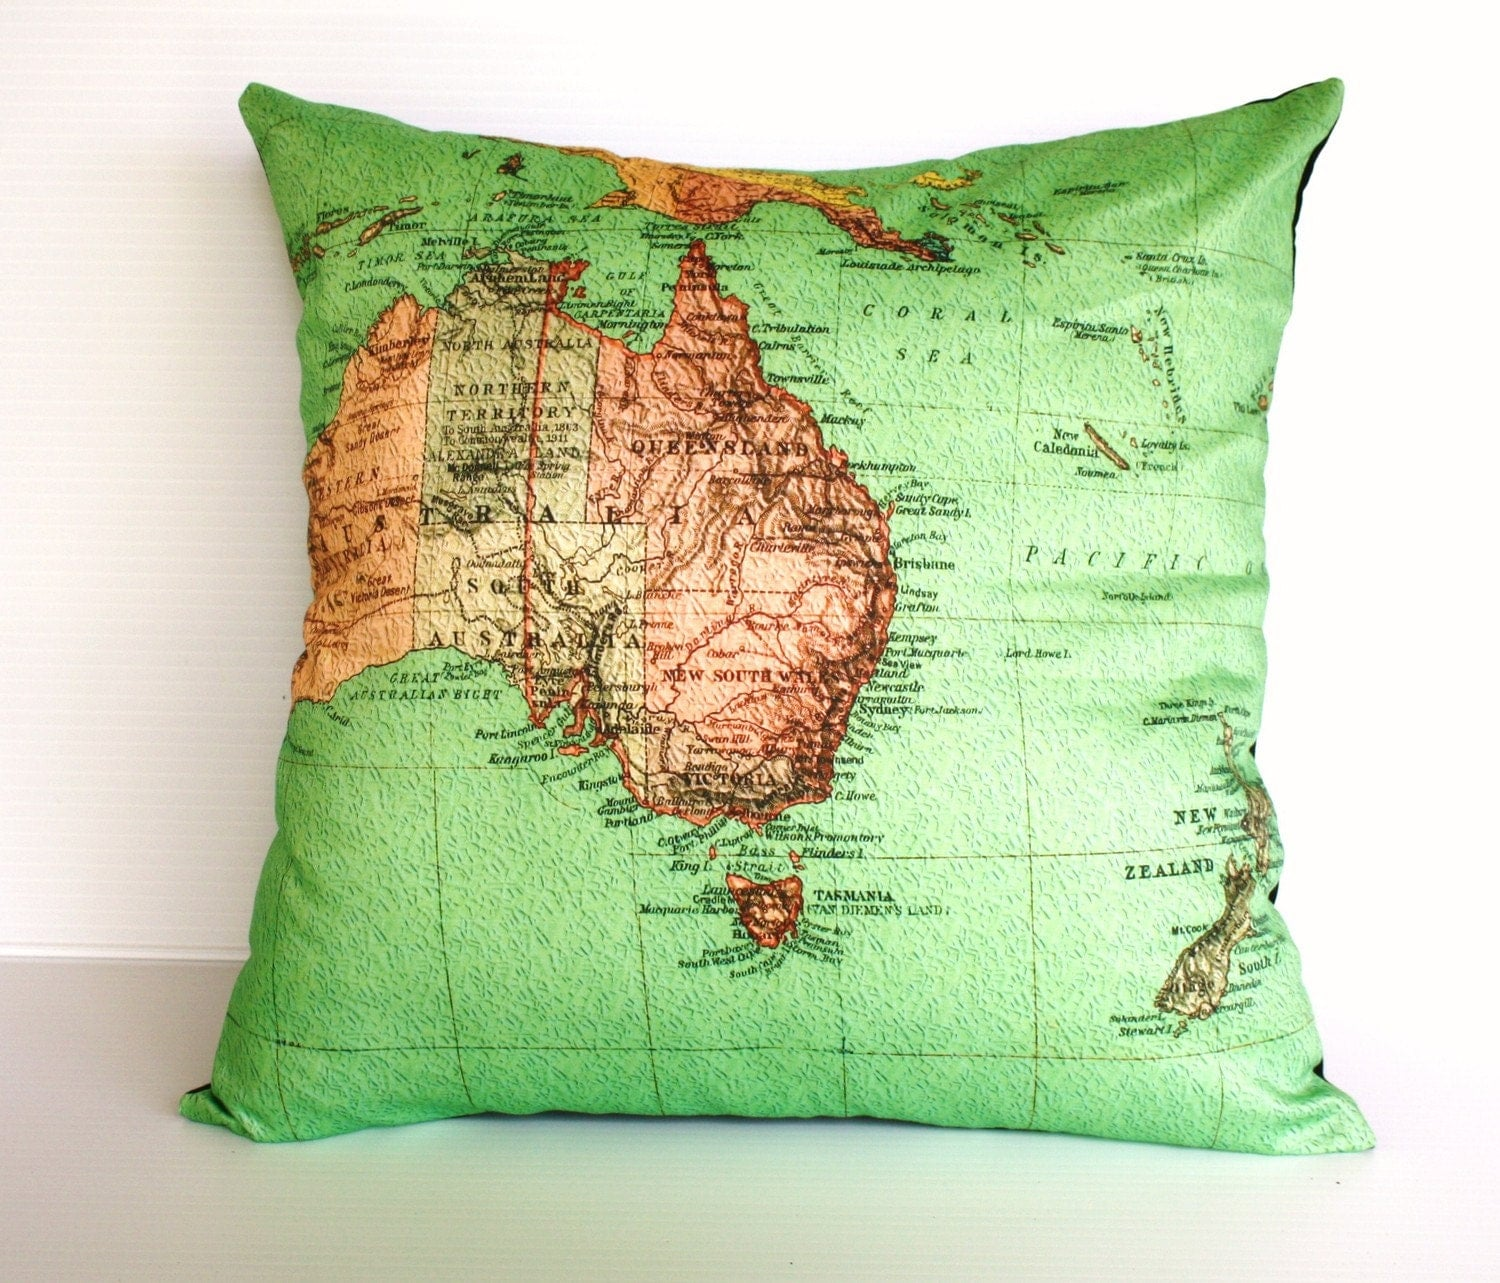 Then cushions and throws for sale online and instore are a wonderful and versatile option to consider. For example, you can opt for cushion covers that are fairly neutral and then add contrasting splashes of colour with a bright throw.